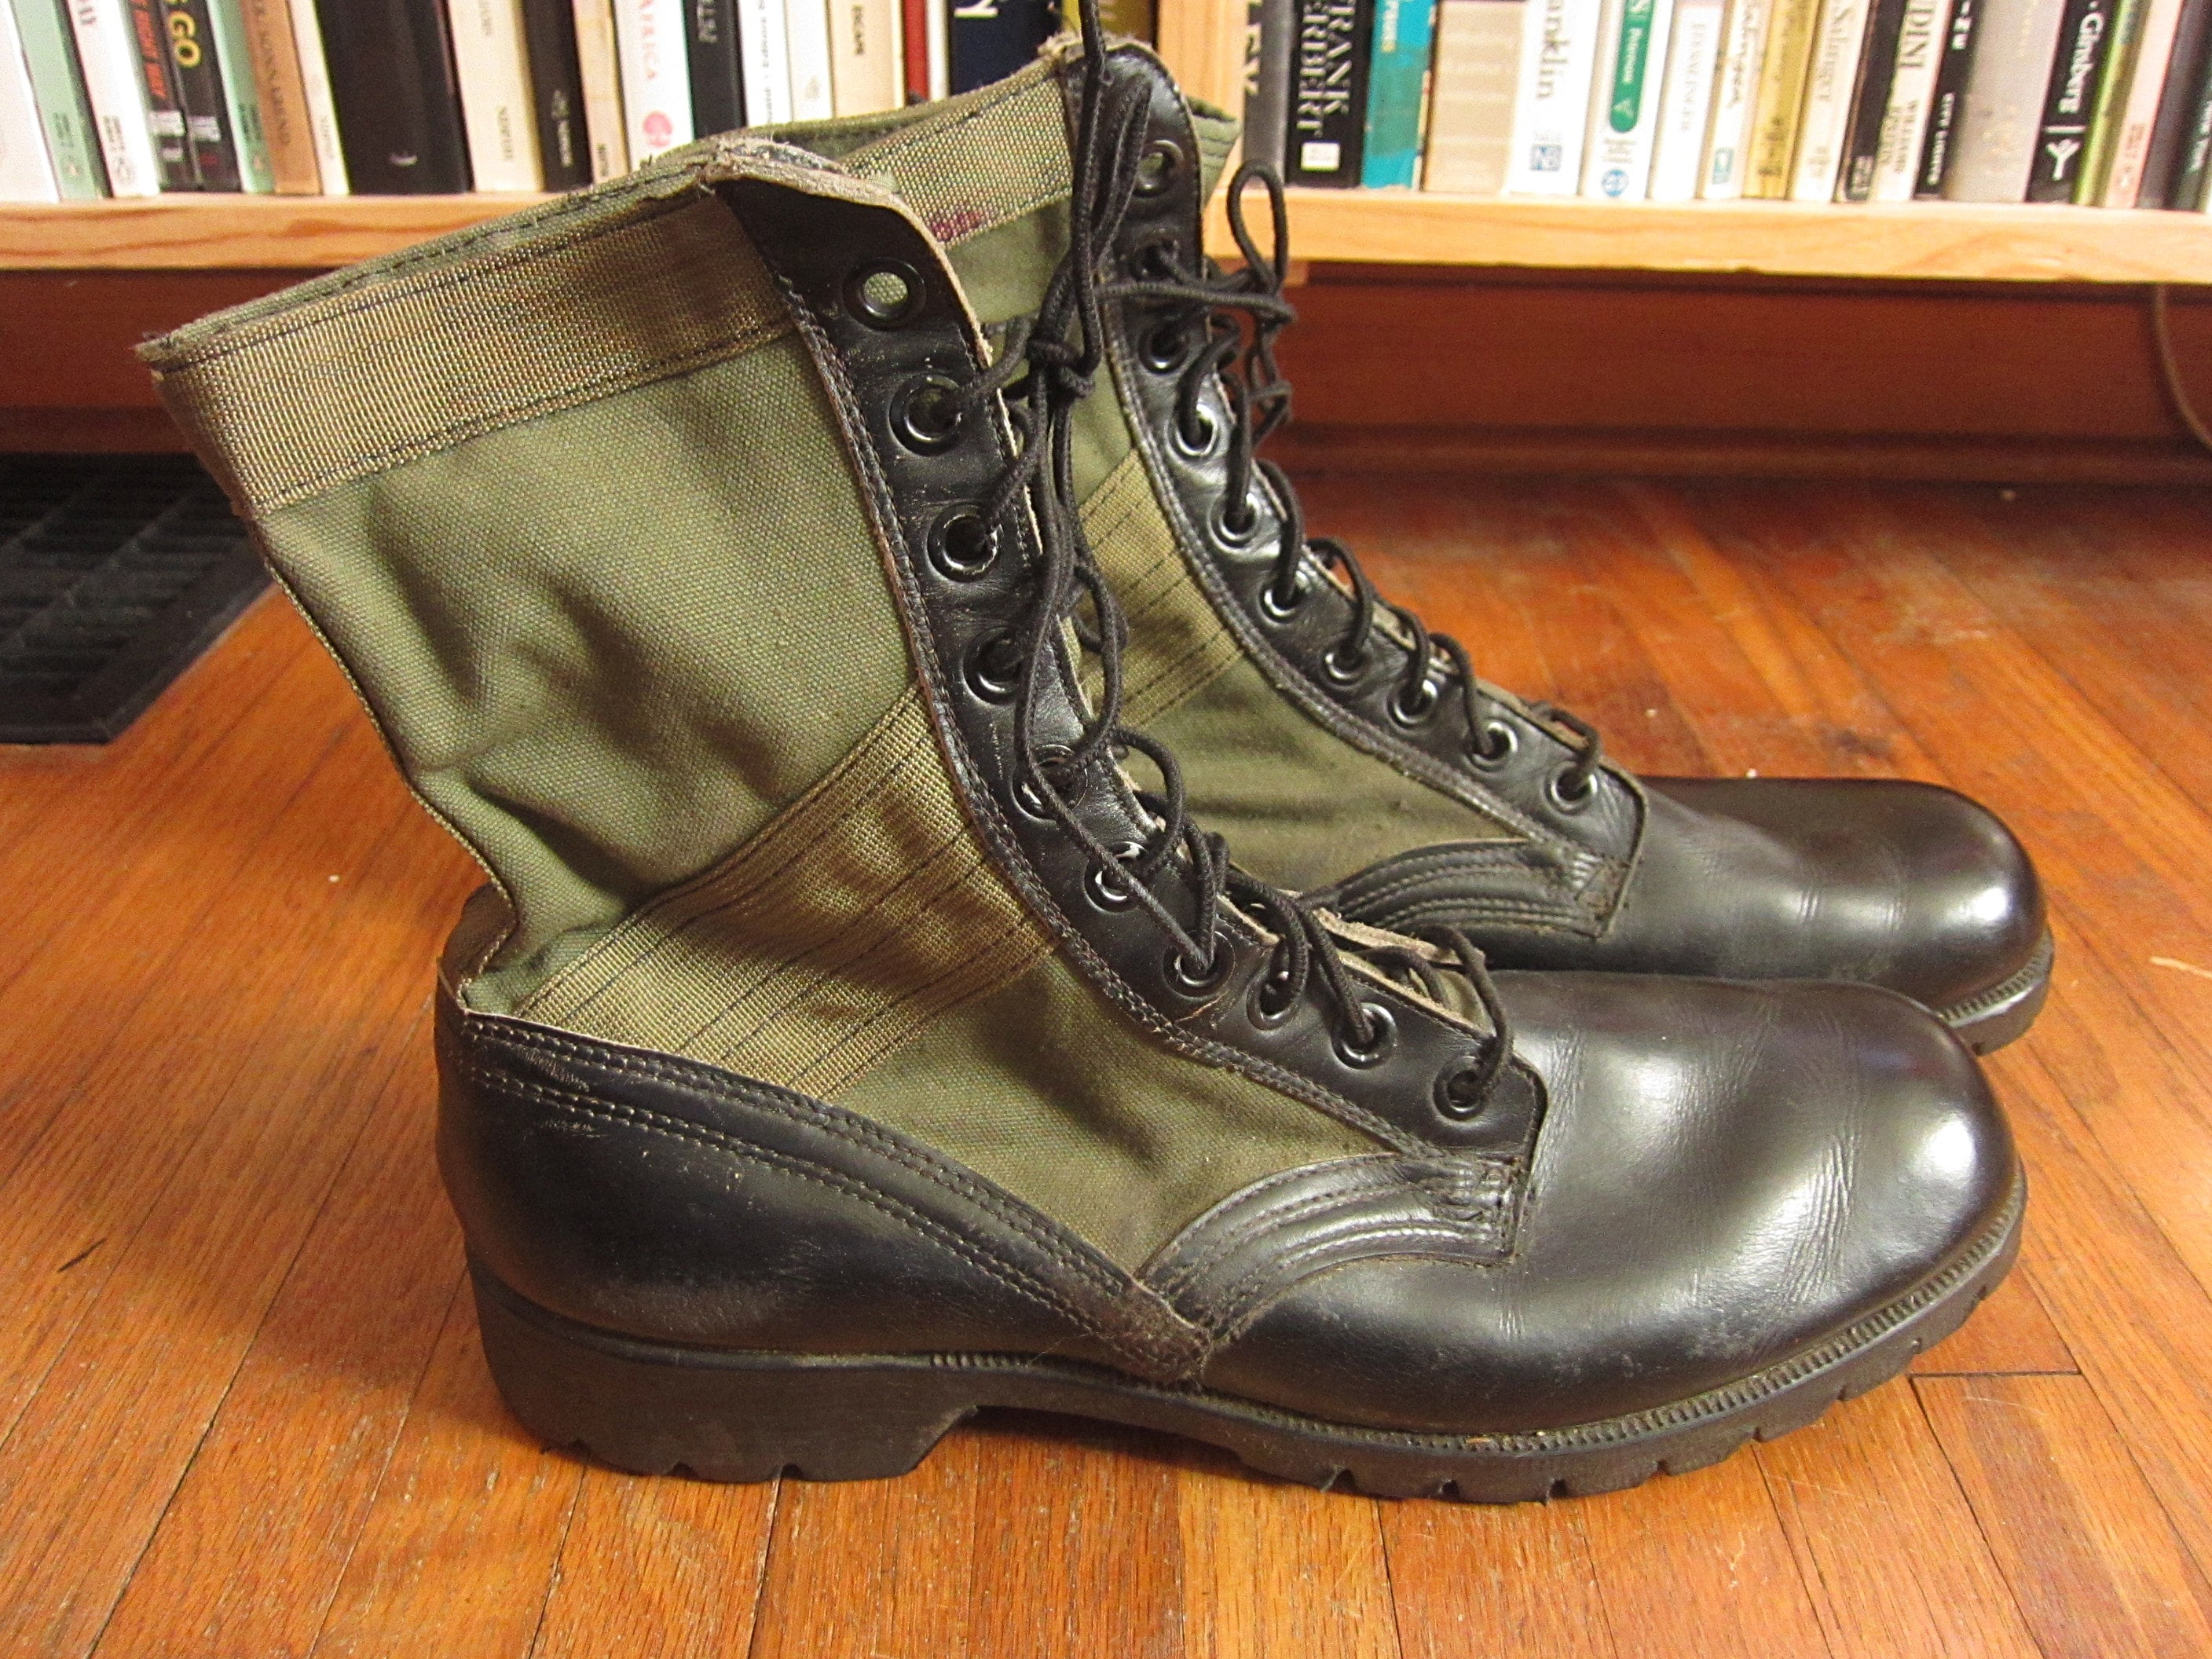 Tamaño 12 60s US Army Army Army Jungle  botas    Spike Protective Vietnam Era 1960s verde negro Canvas Rubber High Ankle Combat 49592d